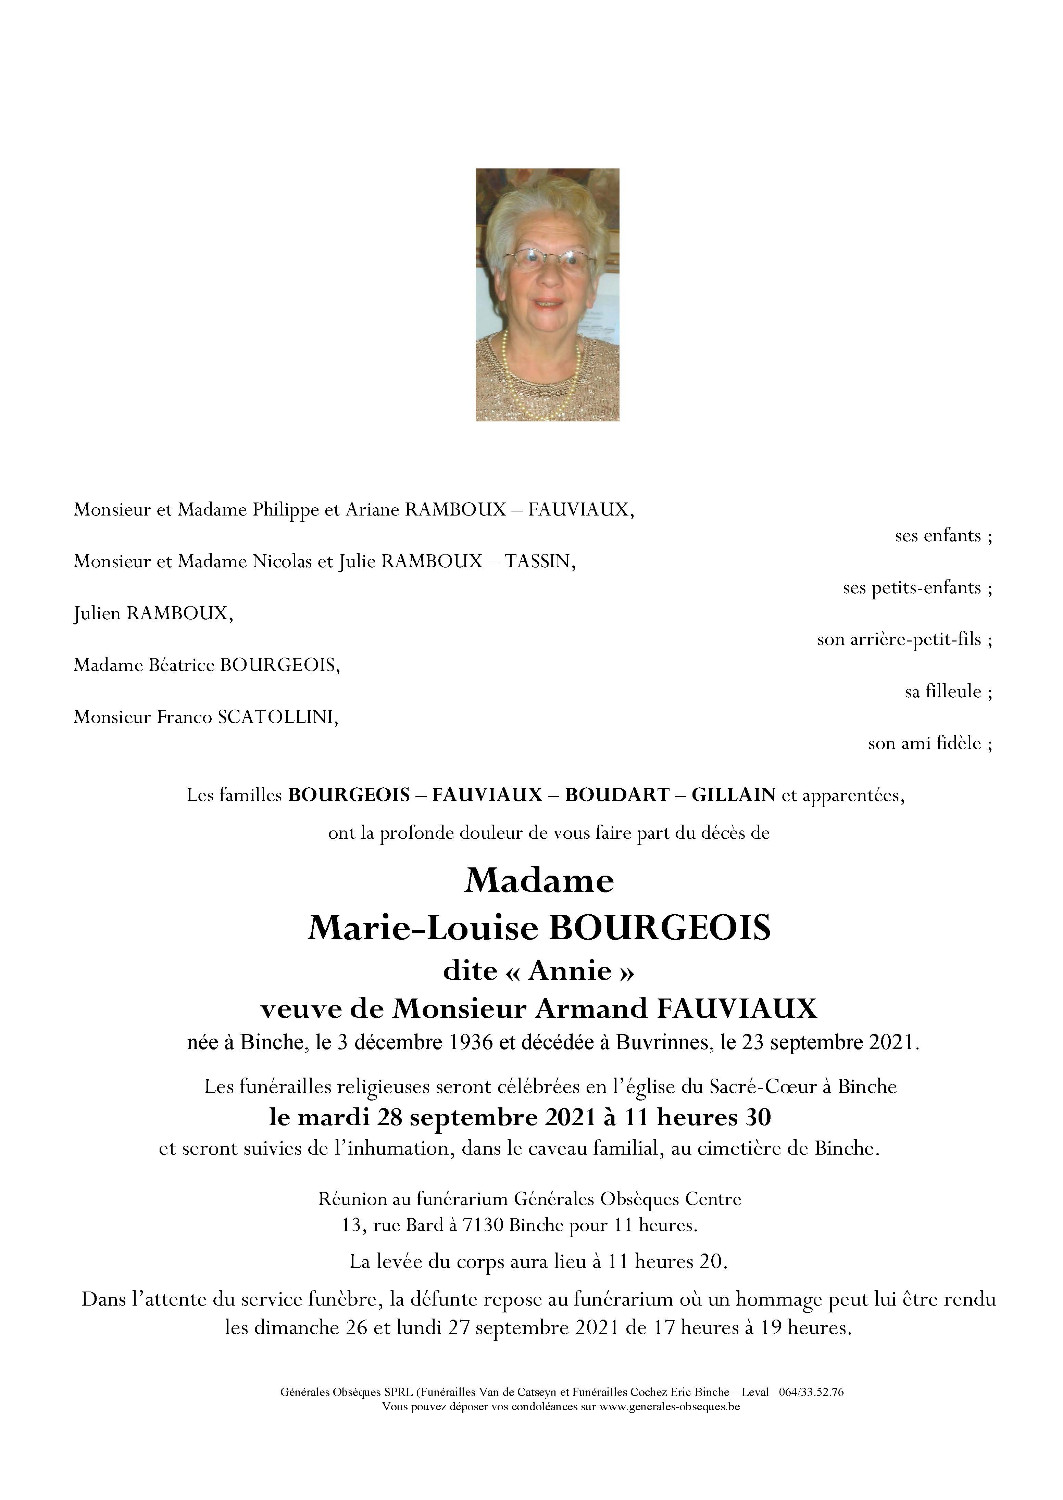 Bourgeois Marie-Louise